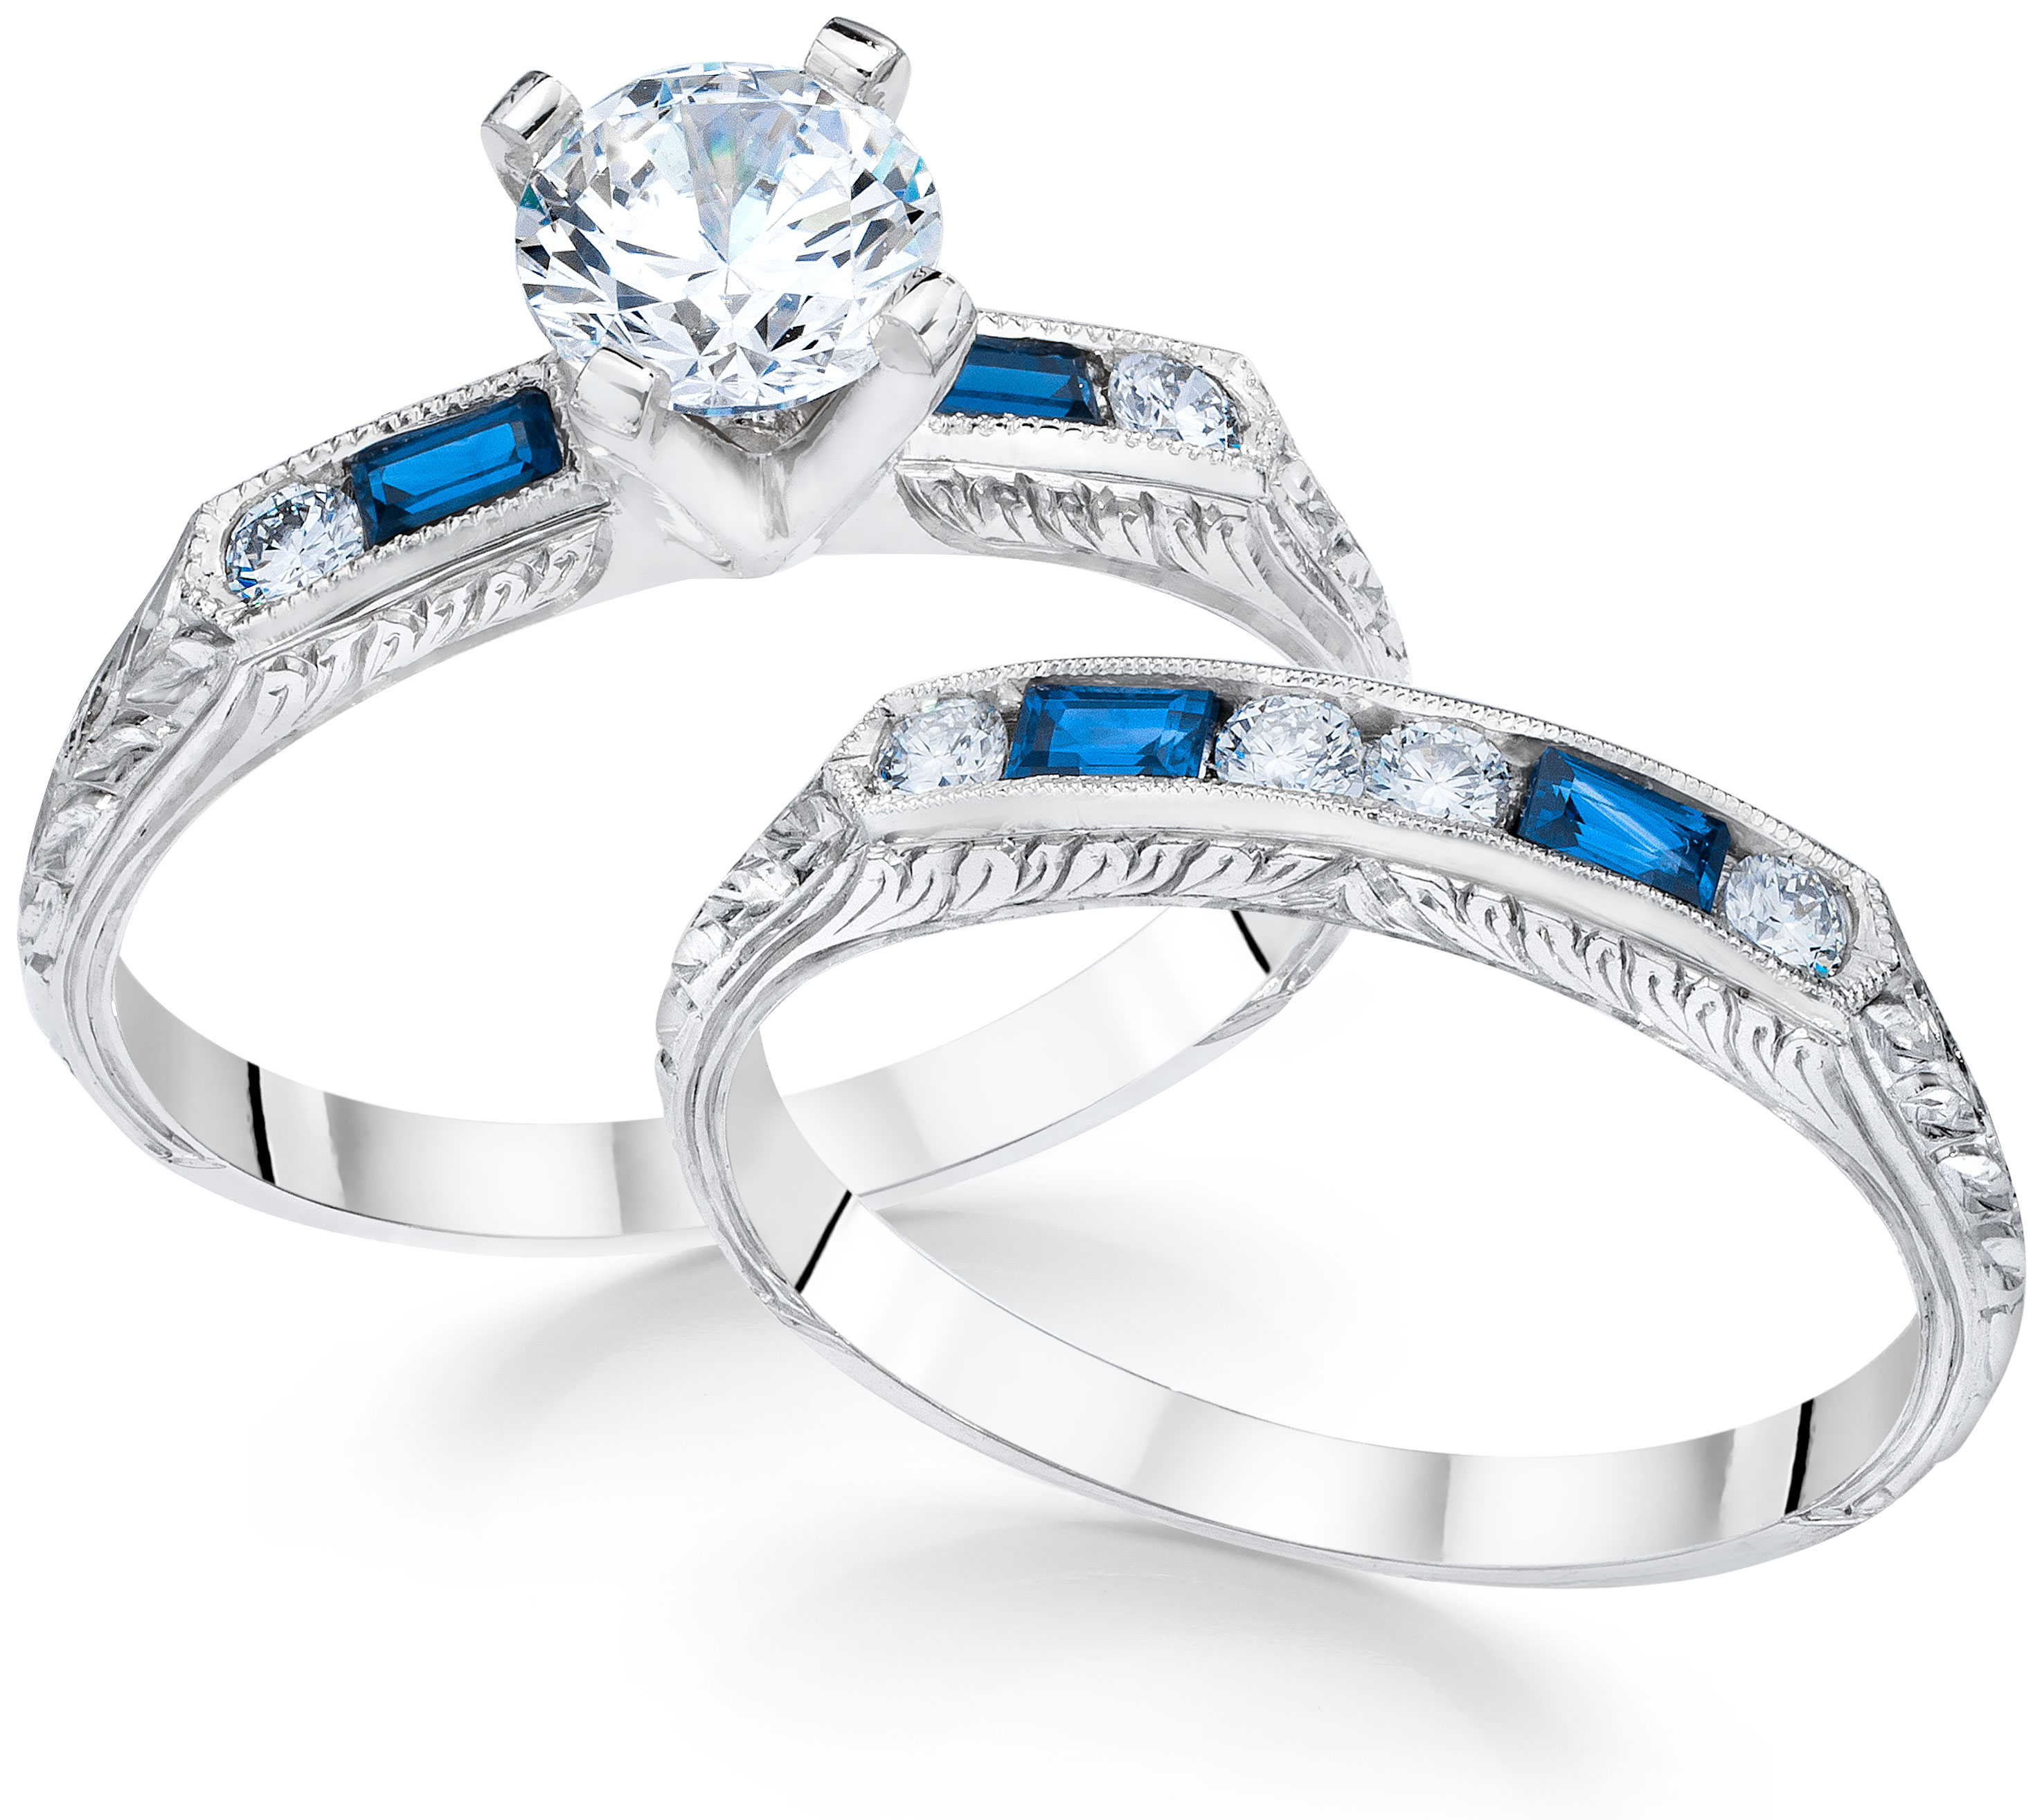 sapphire engagement diamond jewelry sets page bands rings art masters img ring blog and wedding